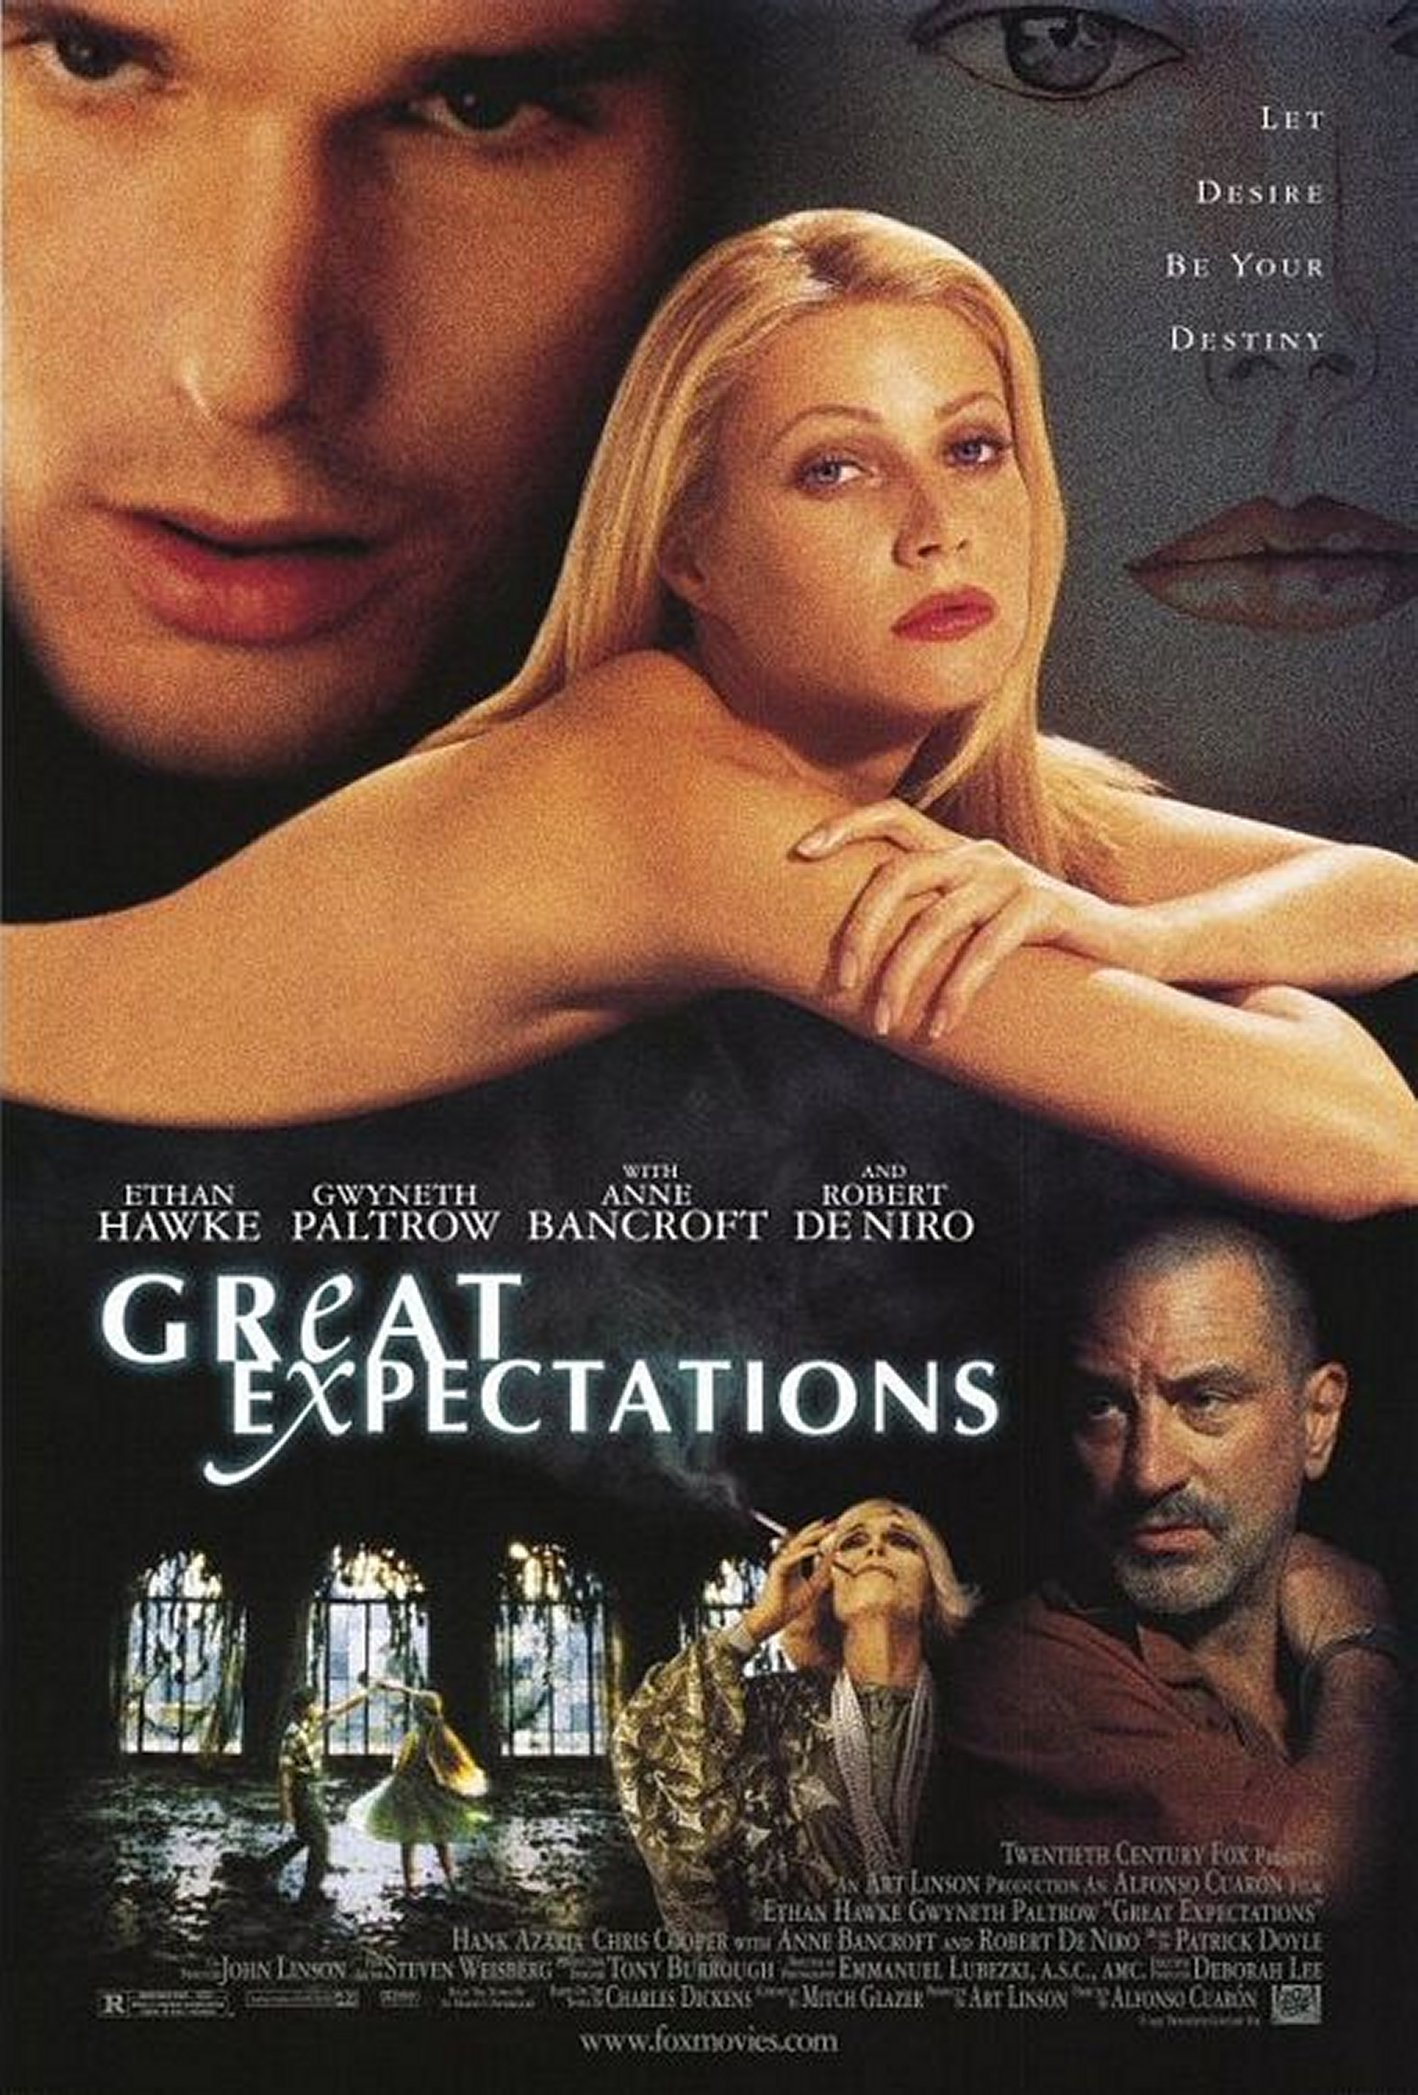 poster great expectations 1998 poster marile speran e poster 1 din 2. Black Bedroom Furniture Sets. Home Design Ideas